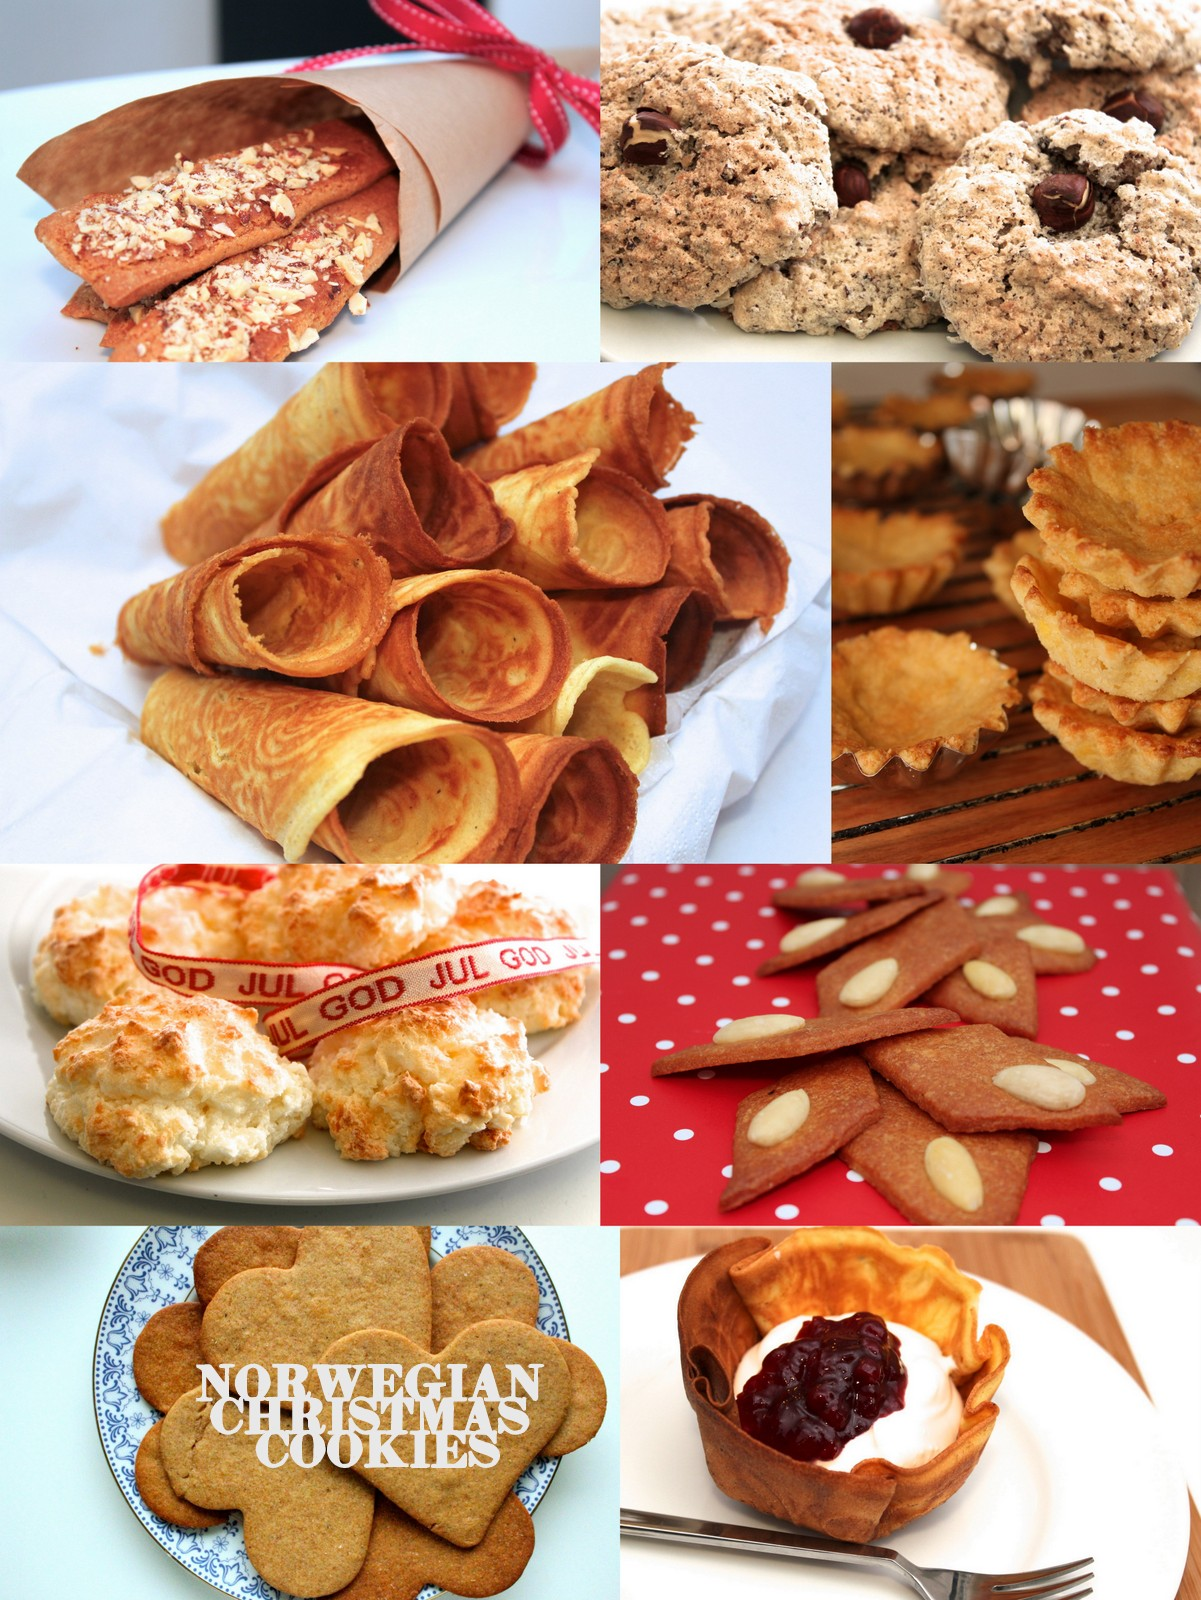 Norwegian Christmas Cookie Recipe Roundup